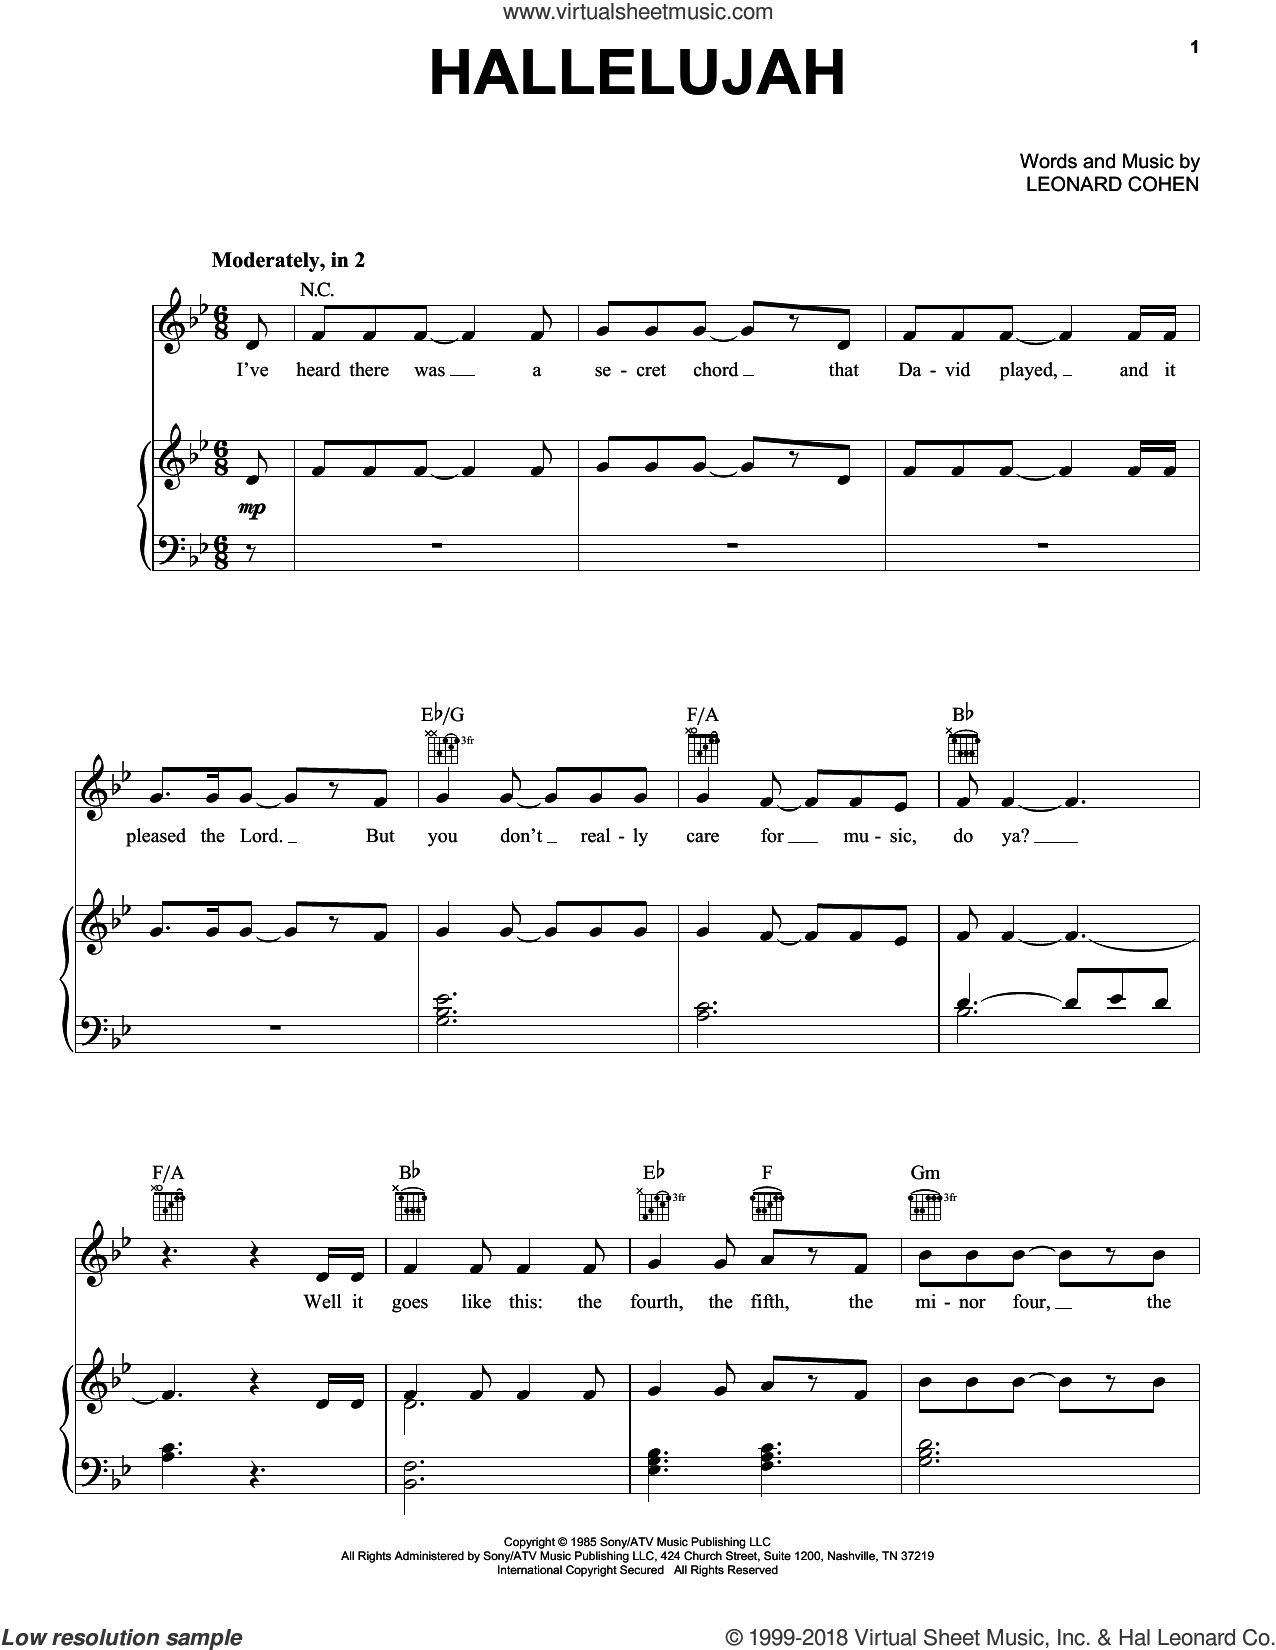 Hallelujah sheet music for voice, piano or guitar by Pentatonix, Justin Timberlake & Matt Morris featuring Charlie Sexton, Lee DeWyze and Leonard Cohen, intermediate skill level